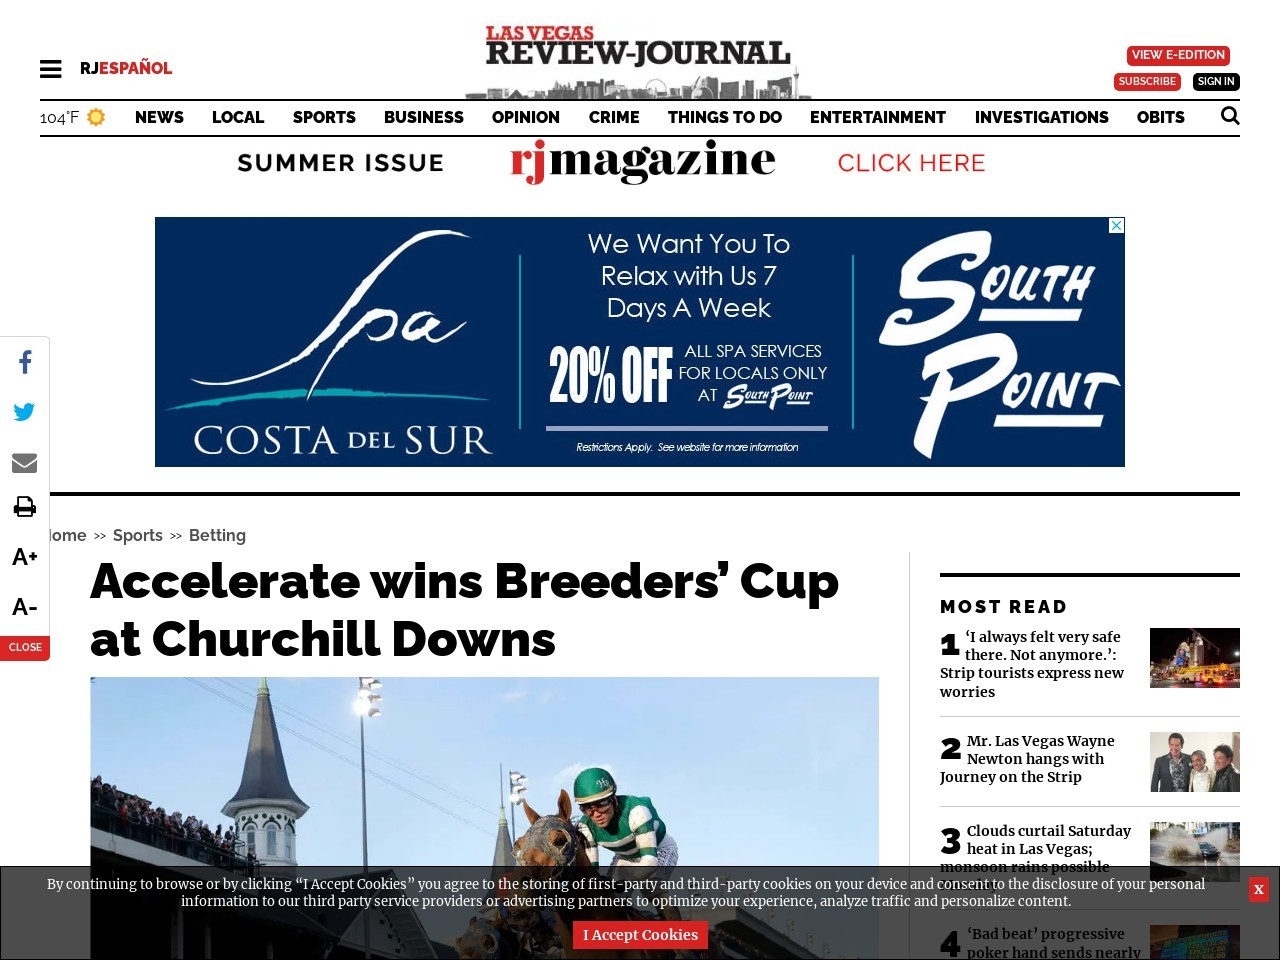 Accelerate wins Breeders' Cup at Churchill Downs